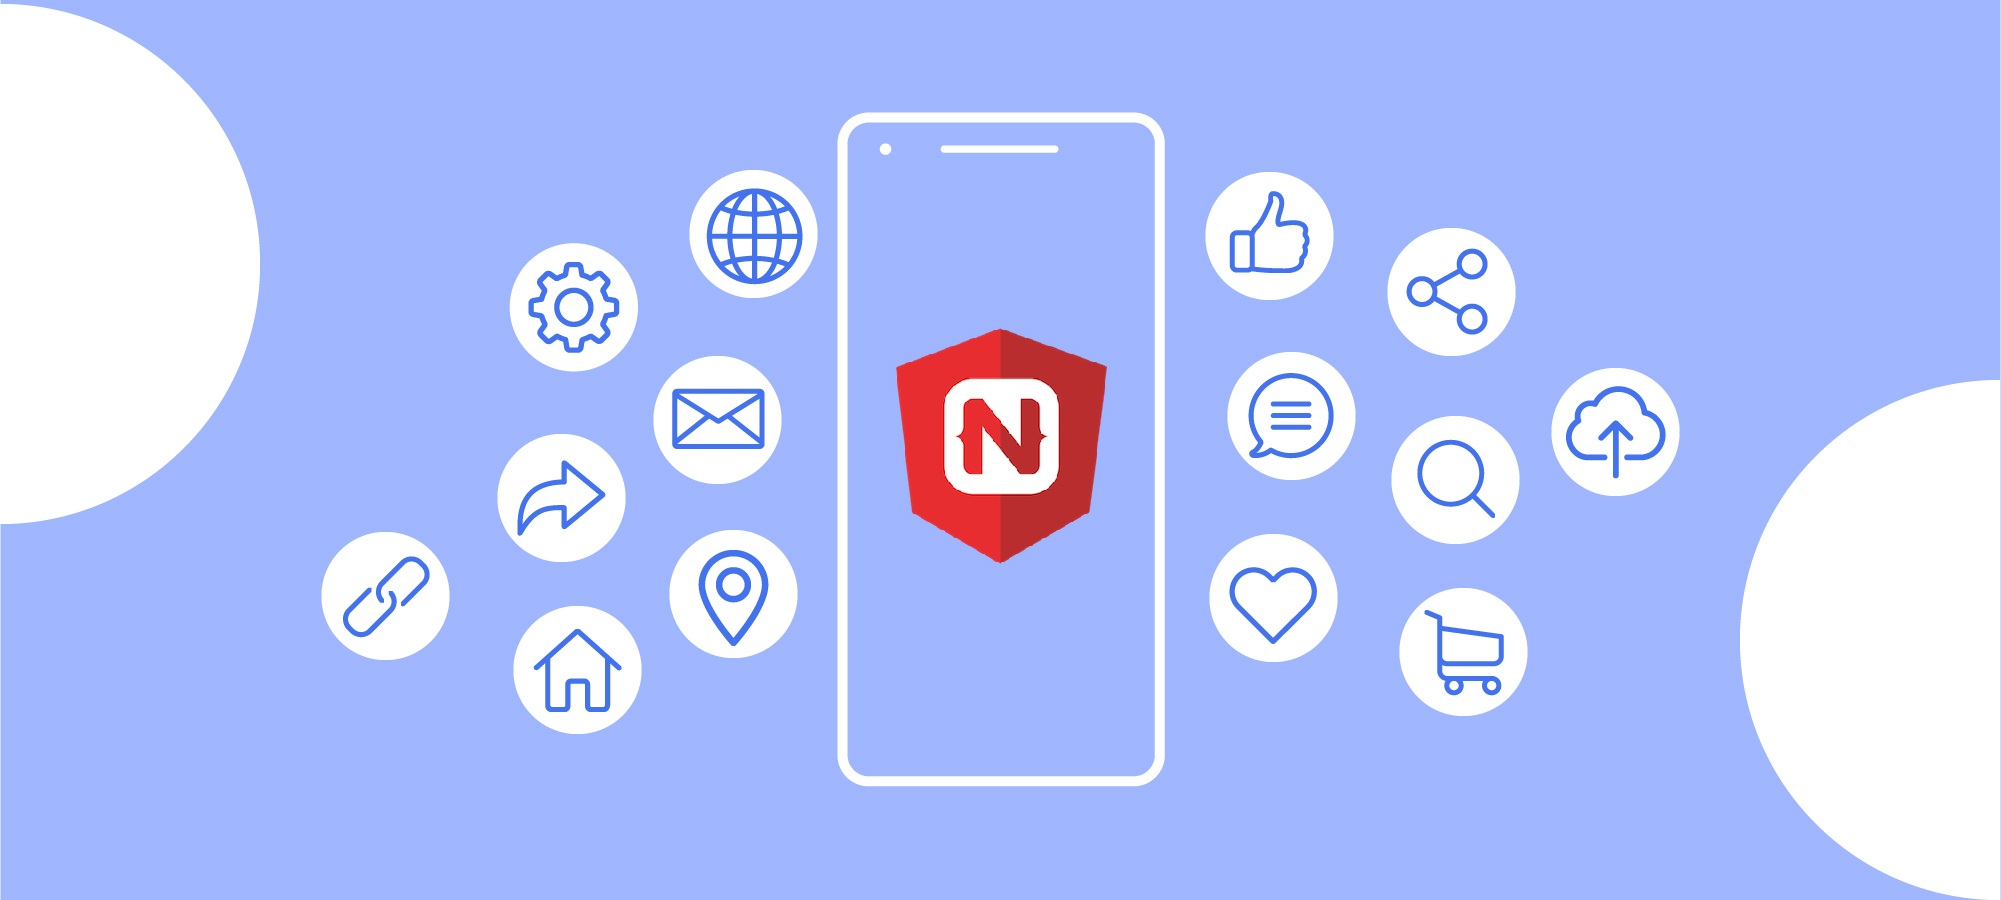 Illustration Native Android and iOS apps with NativeScript and Angular 6